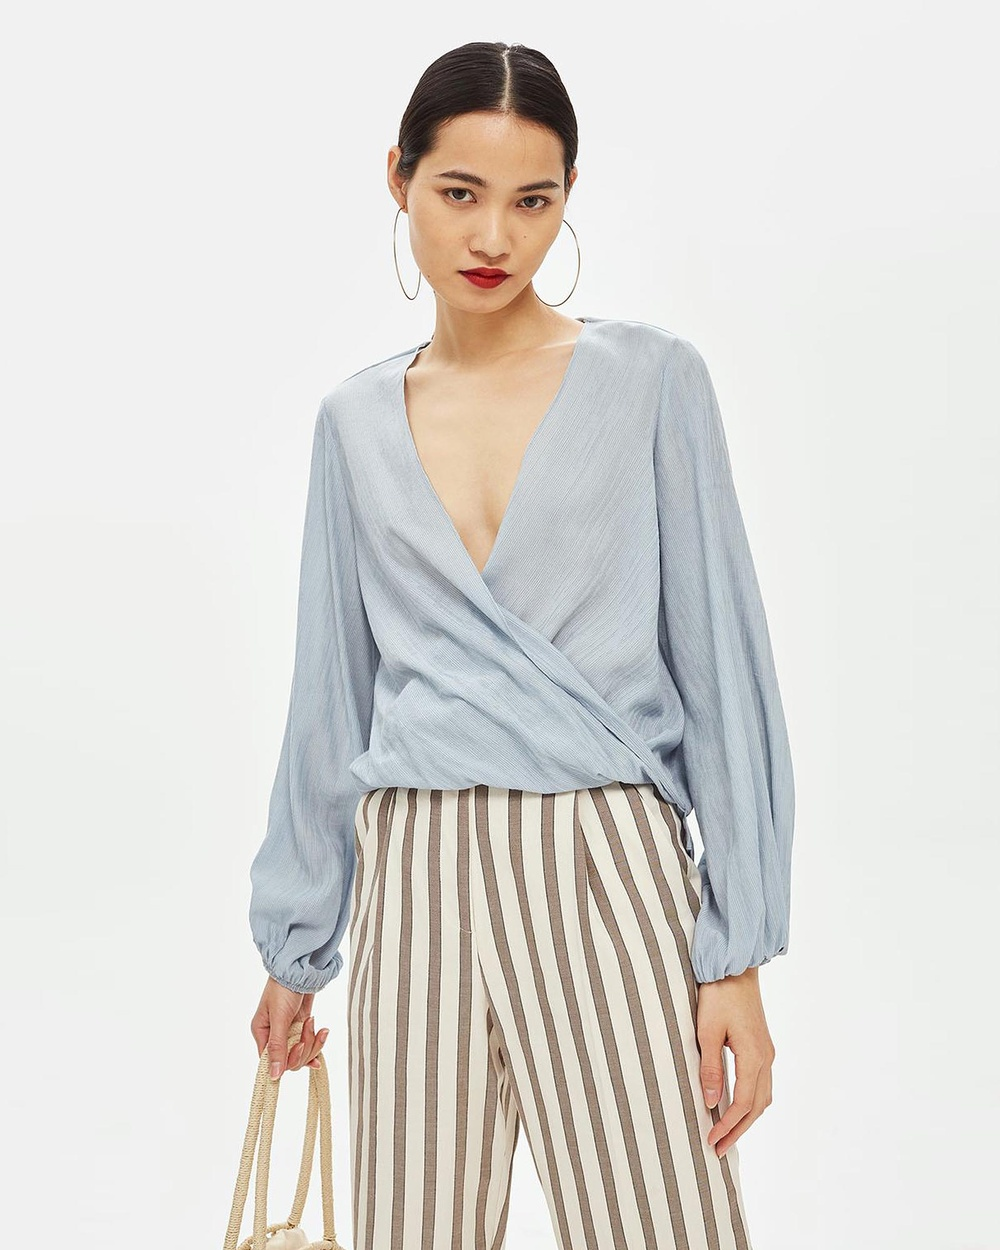 TOPSHOP Casual Drape Top Tops Light Grey Casual Drape Top